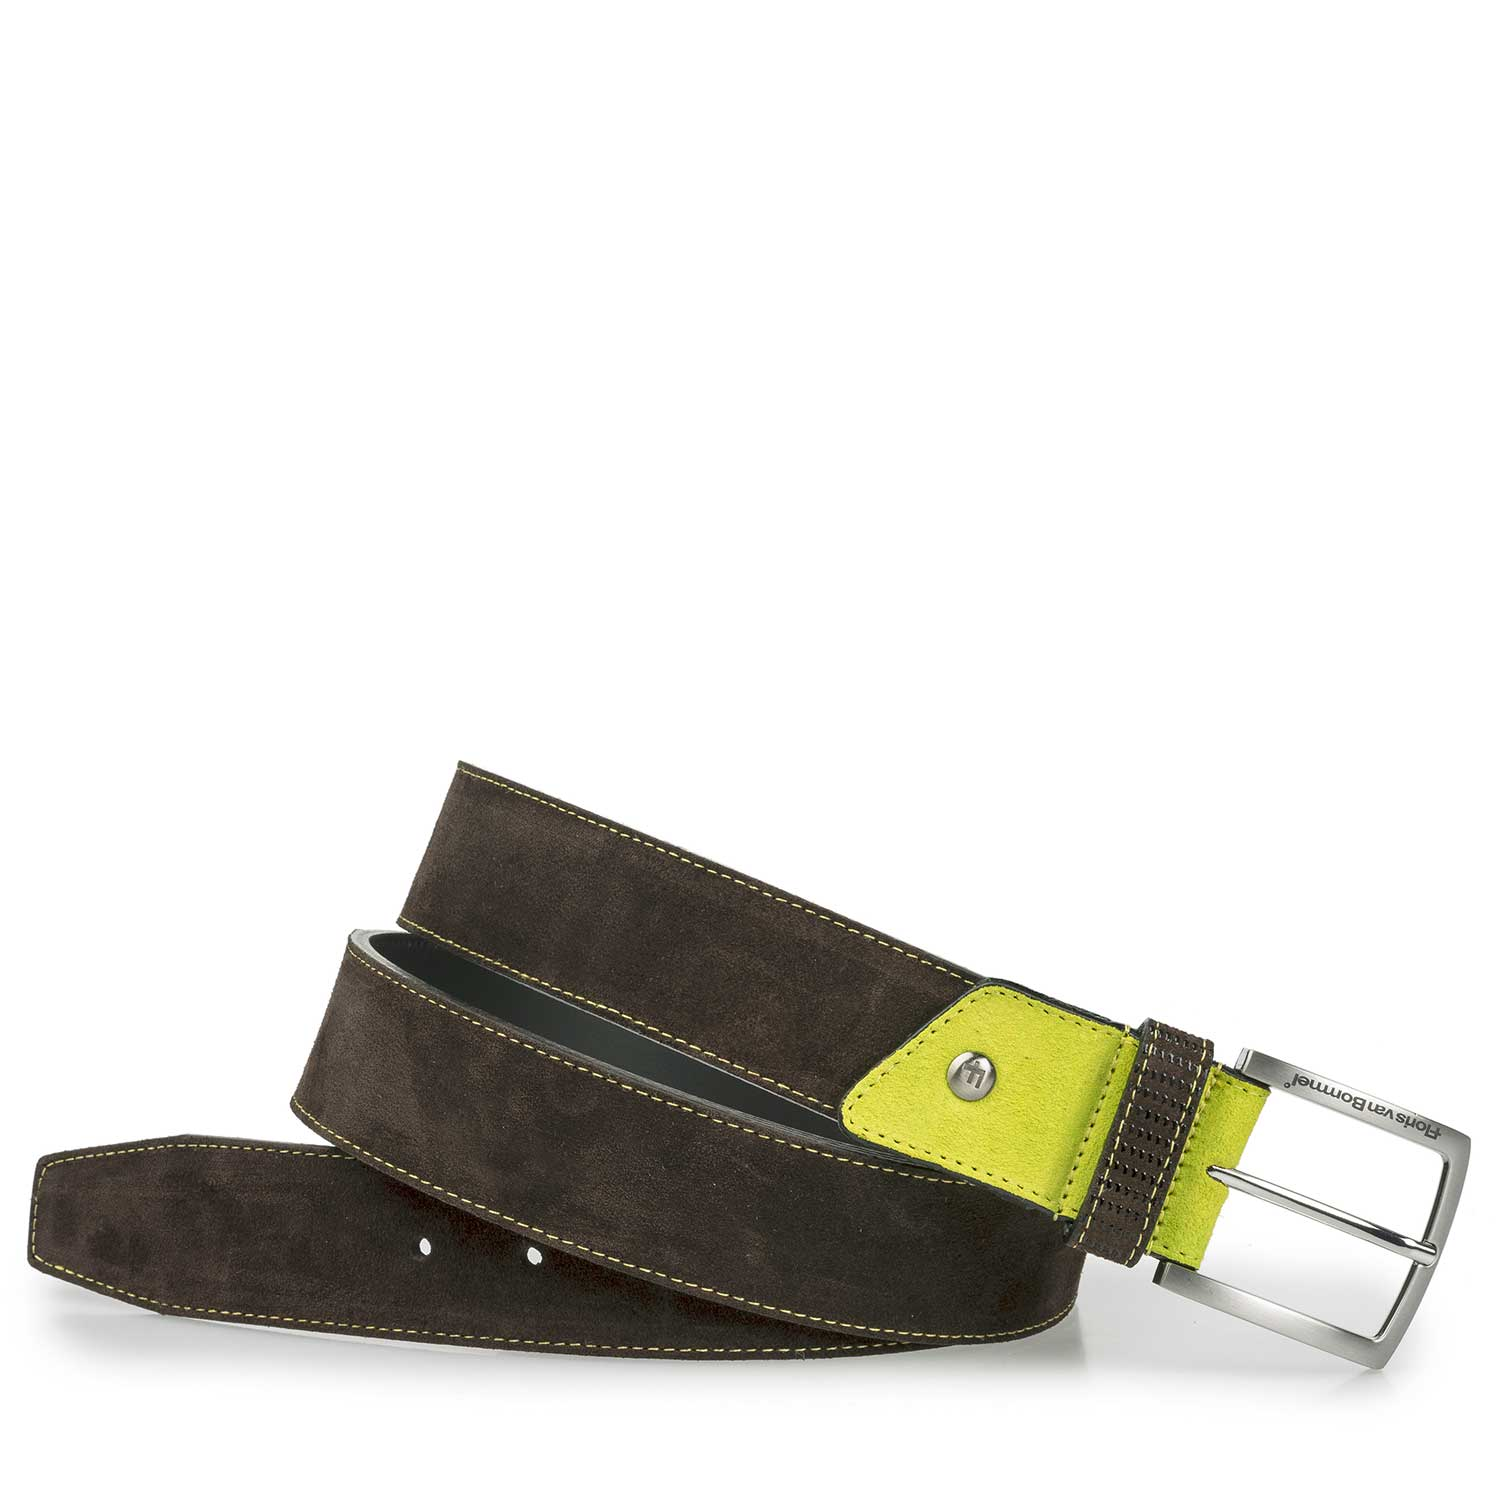 75192/00 - Brown belt with yellow details